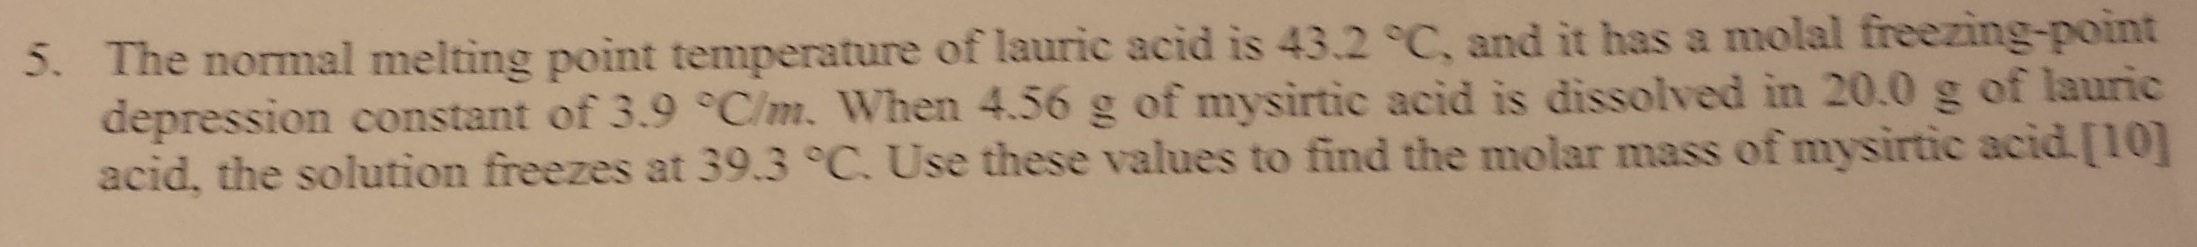 freezing point depression lauric acid An experiment involving finding the freezing point depression to find the molecular weight of a  this is the freezing point of the benzoic acid-lauric acid mixture.